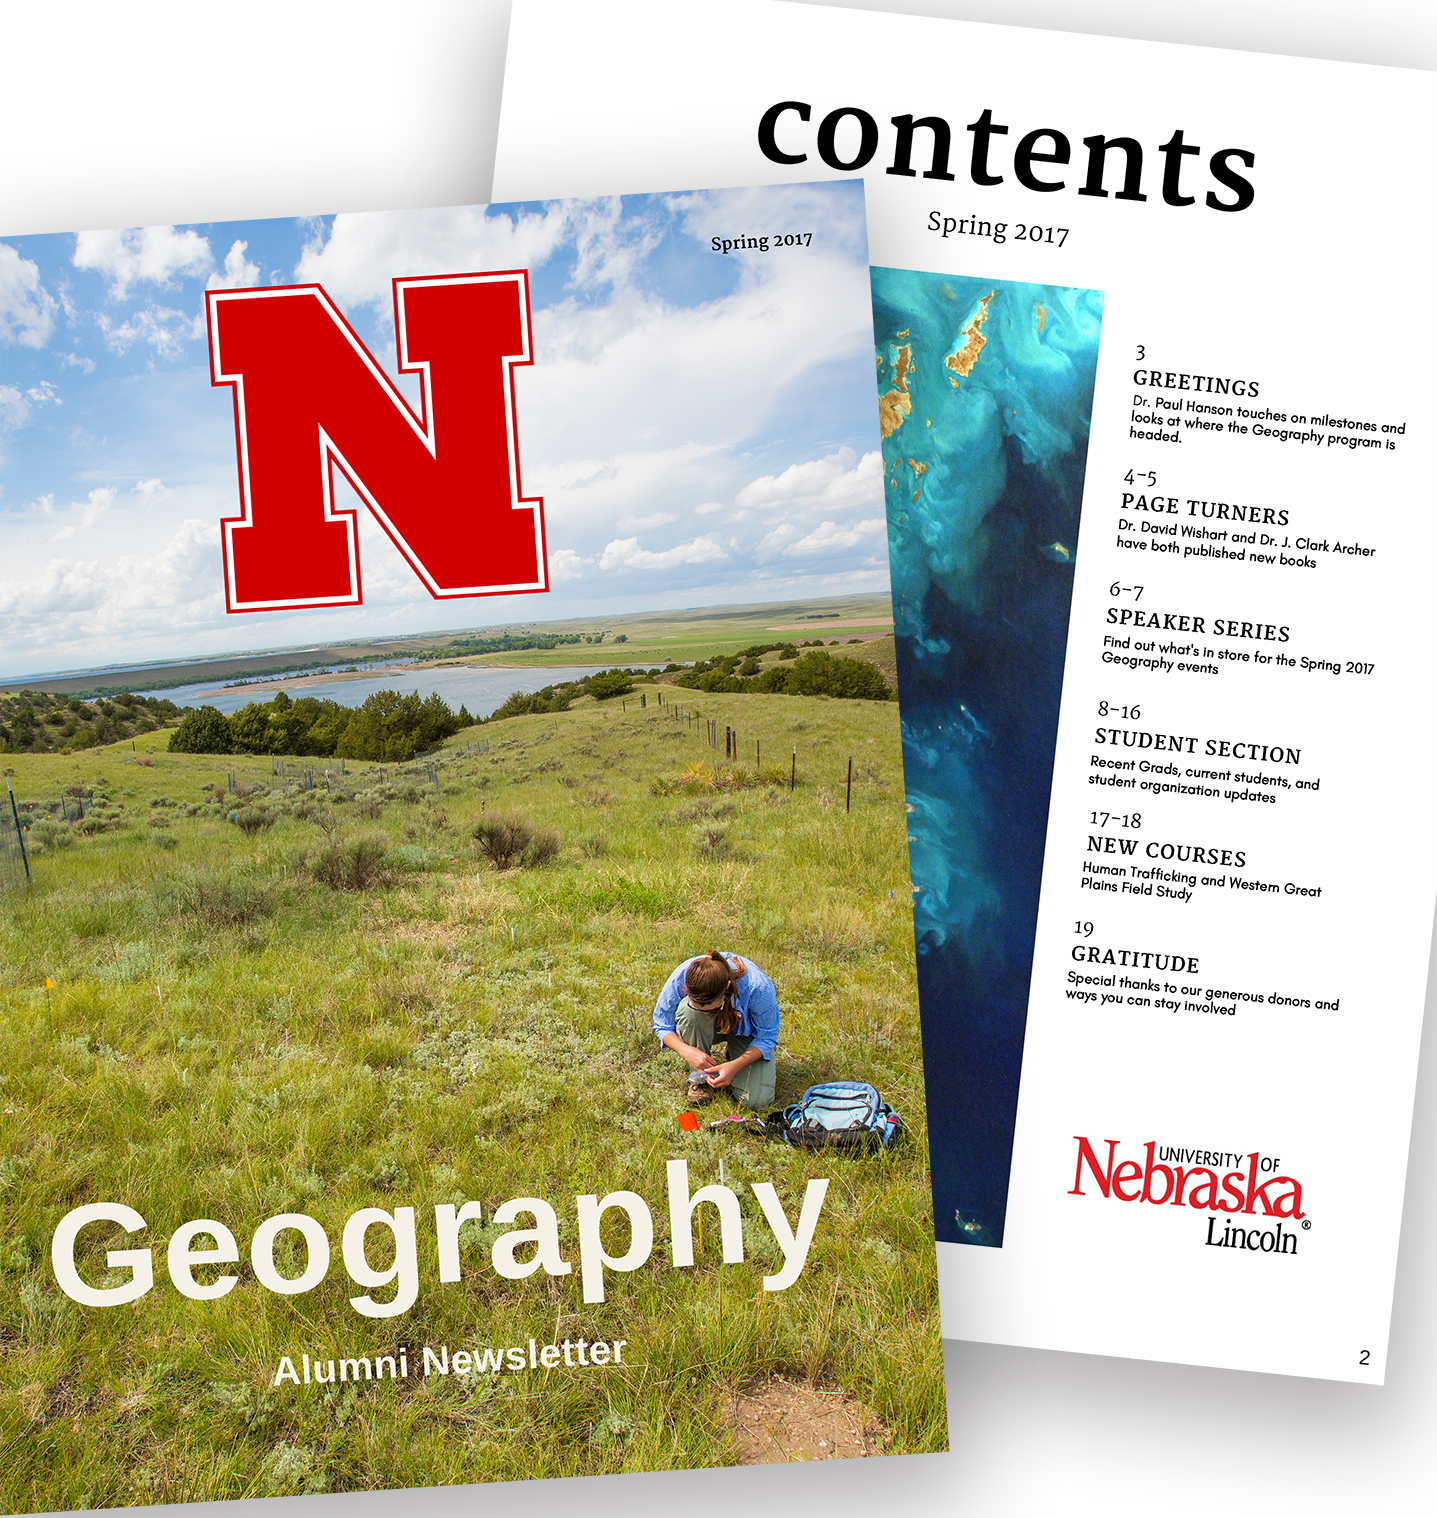 Geography alumni newsletter